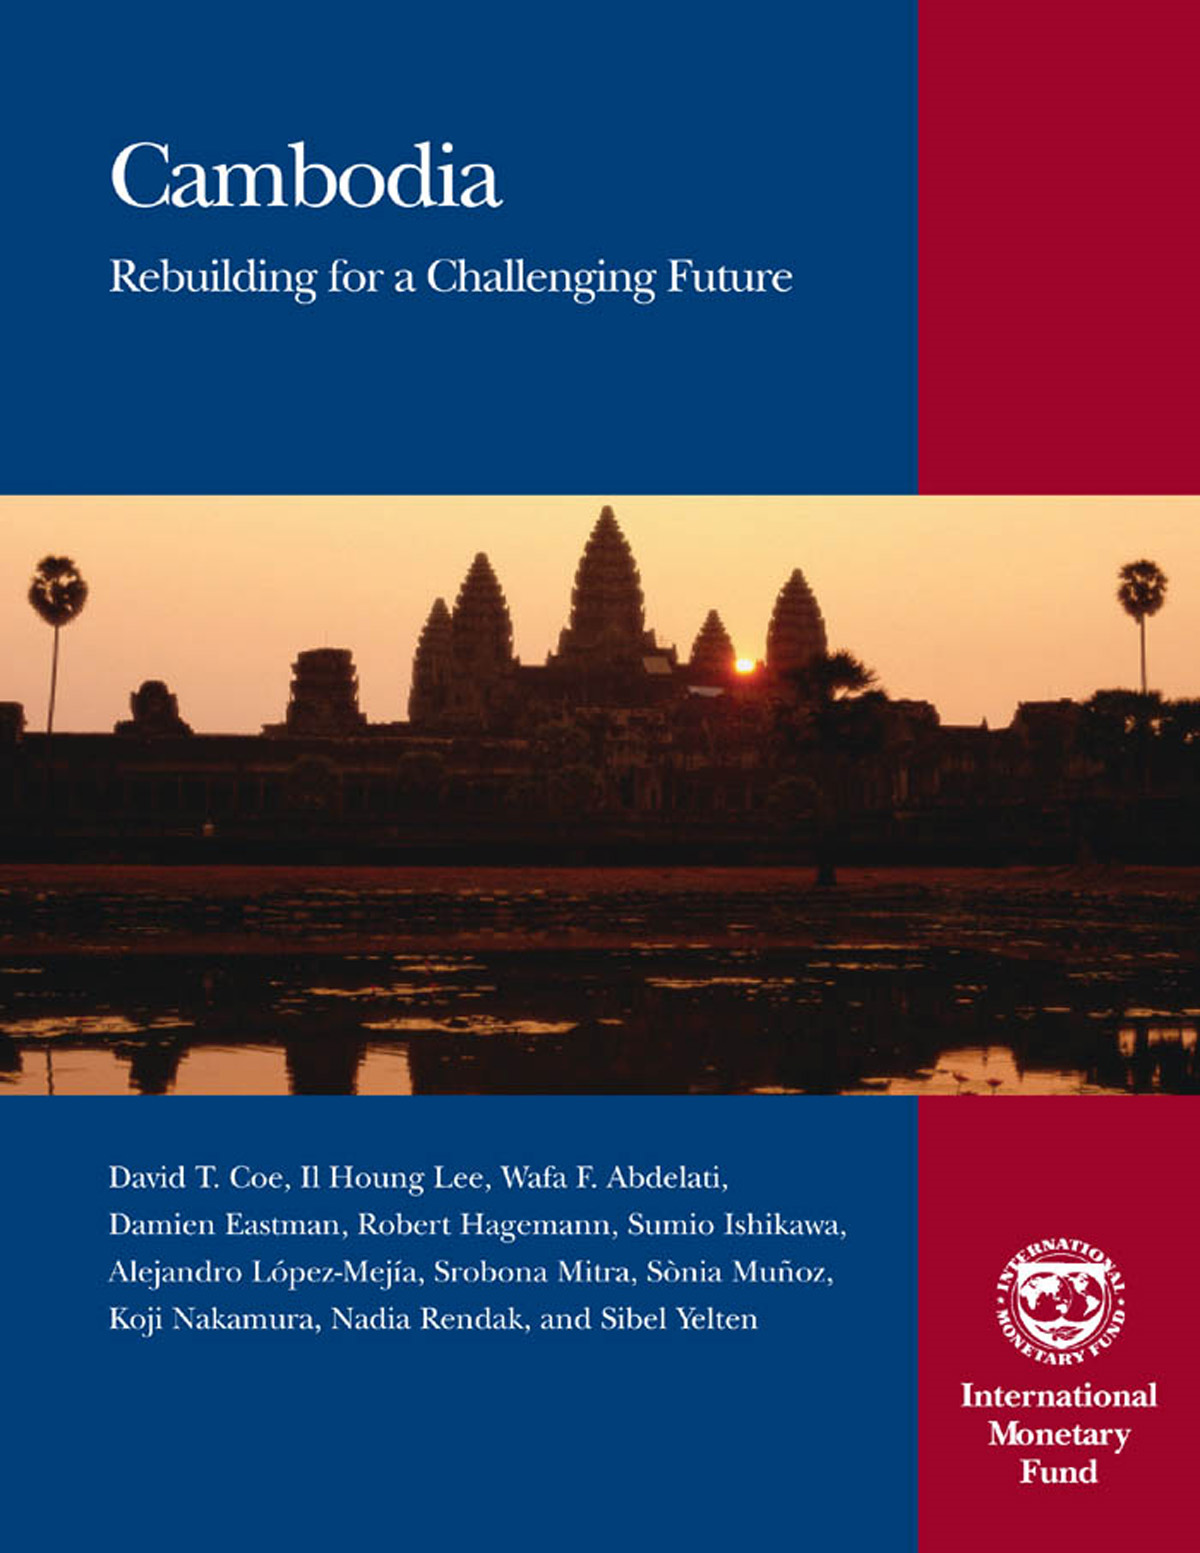 Cambodia: Rebuilding for a Challenging Future